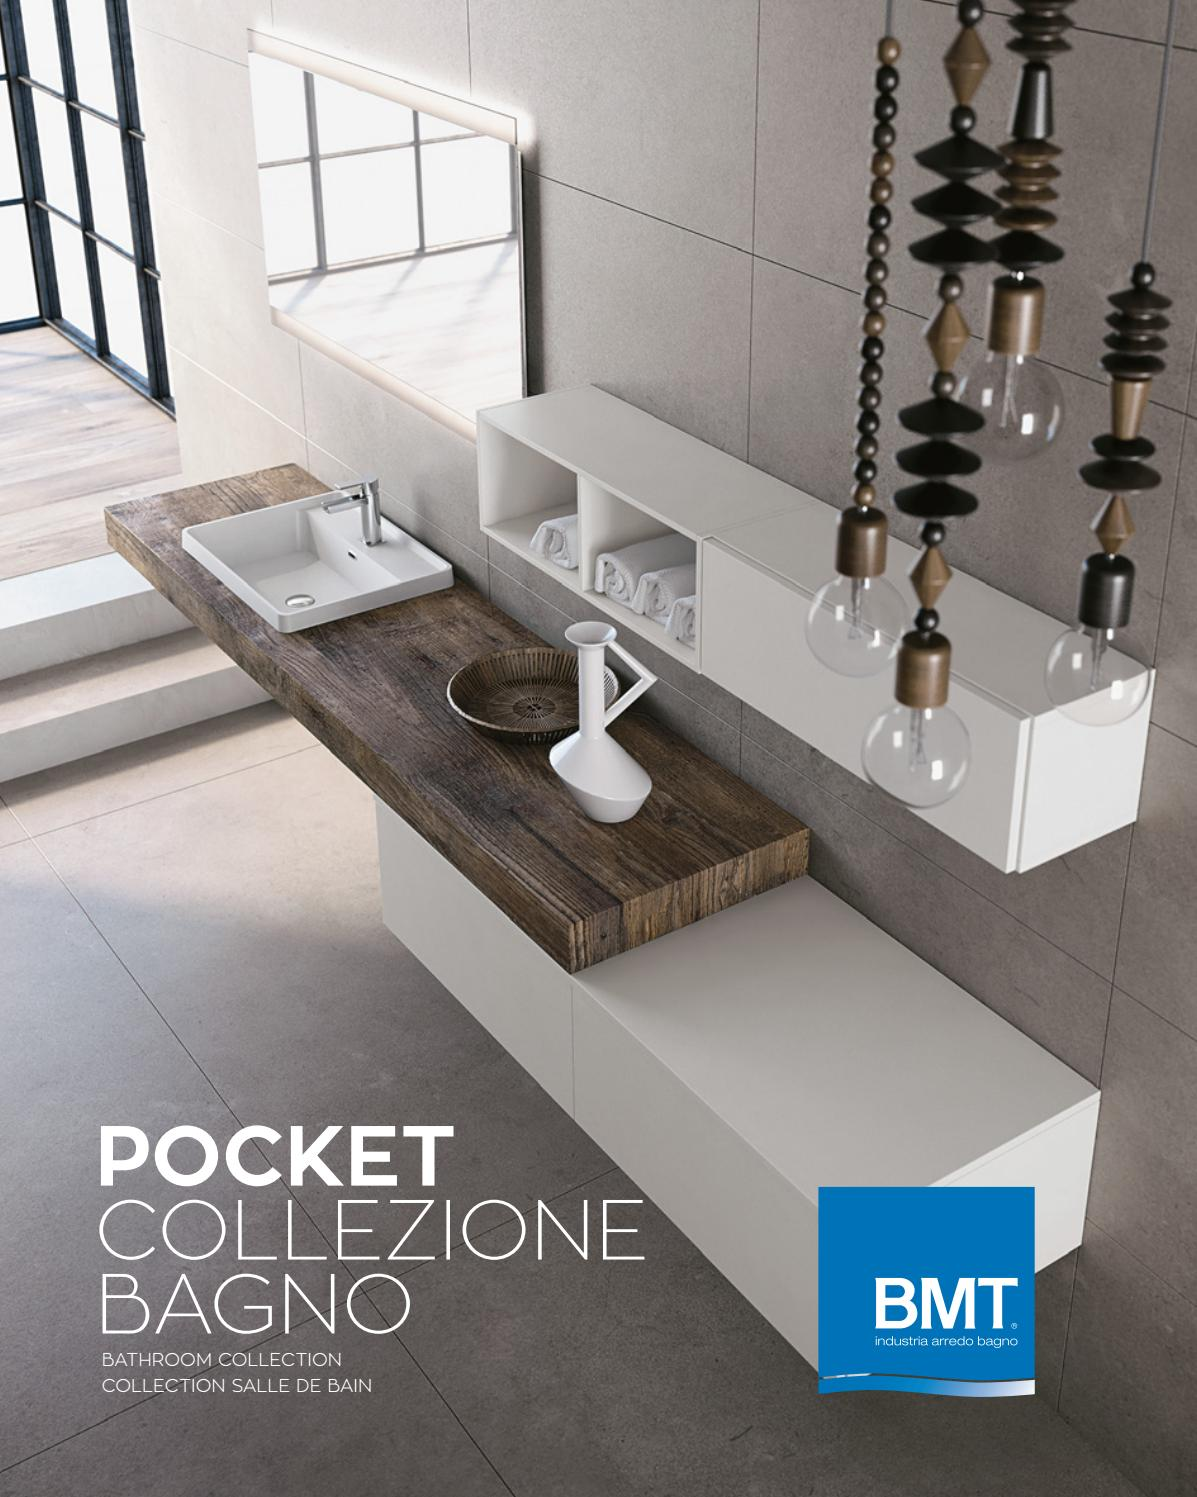 bmt pocket collezione bagno 2017 by bmt bagni issuu